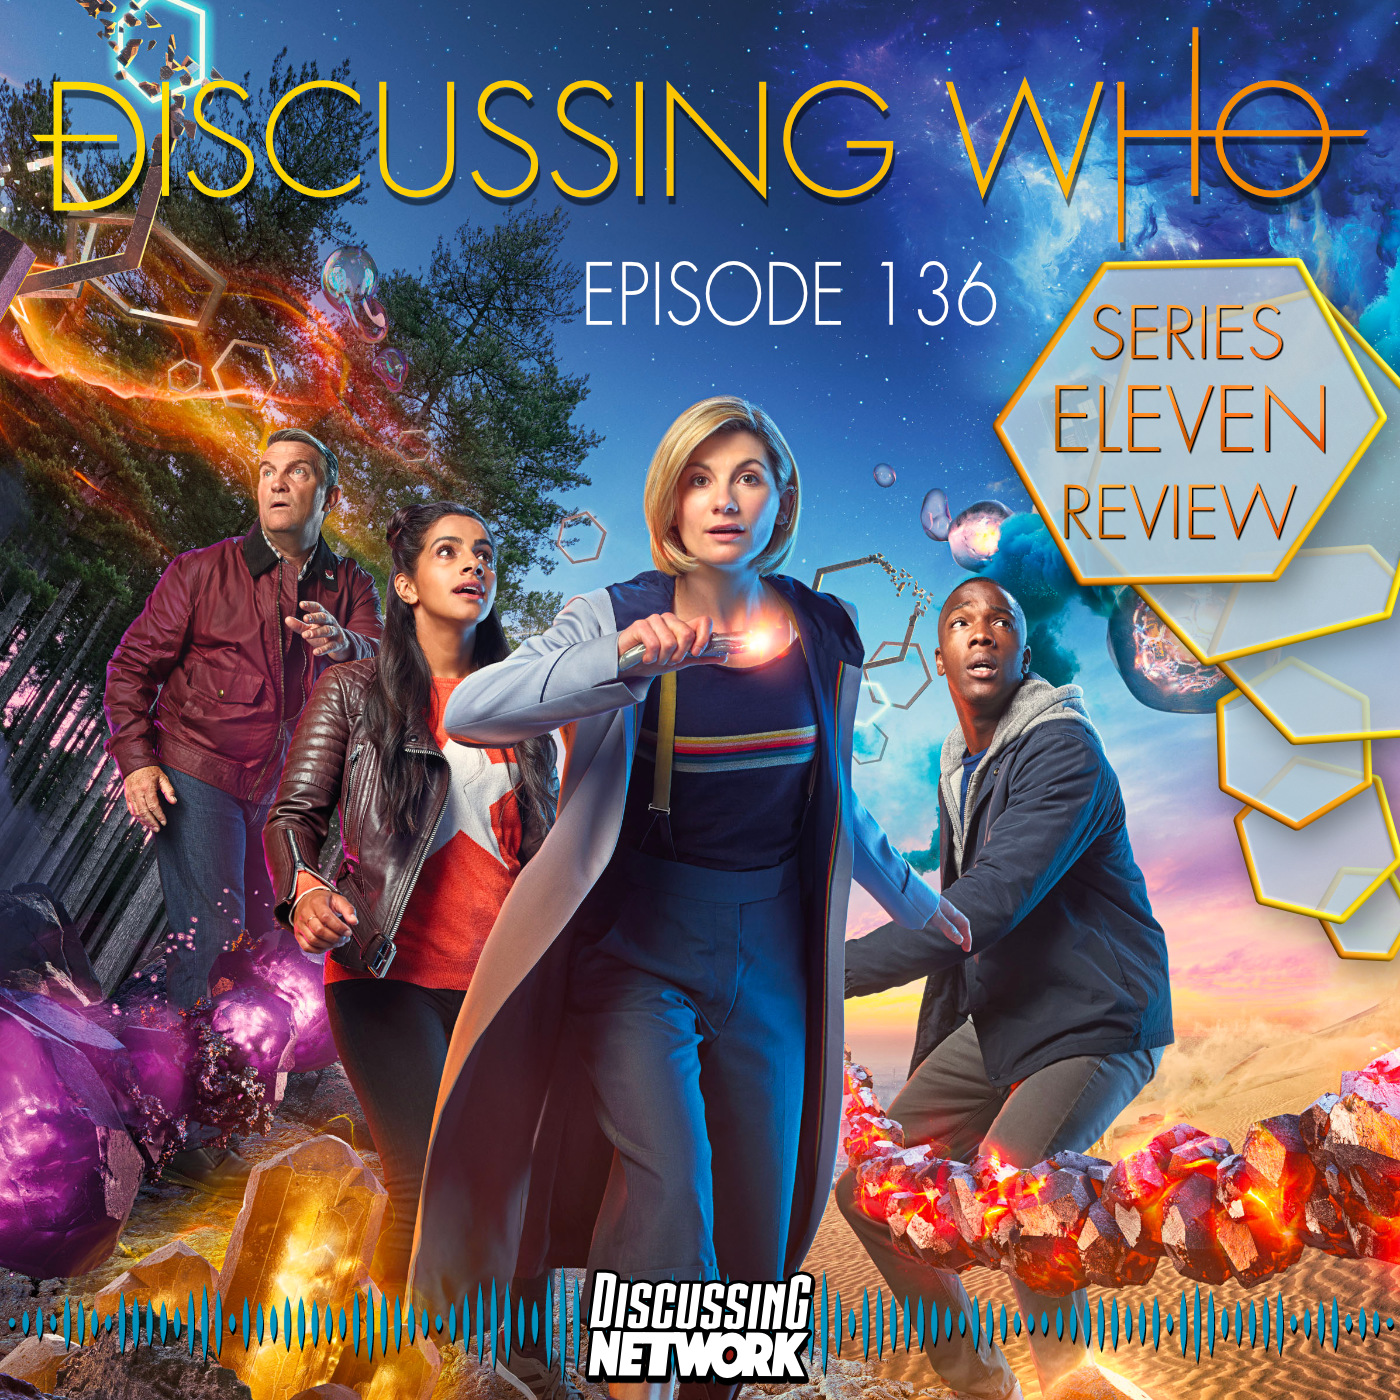 Review of Doctor Who Series 11